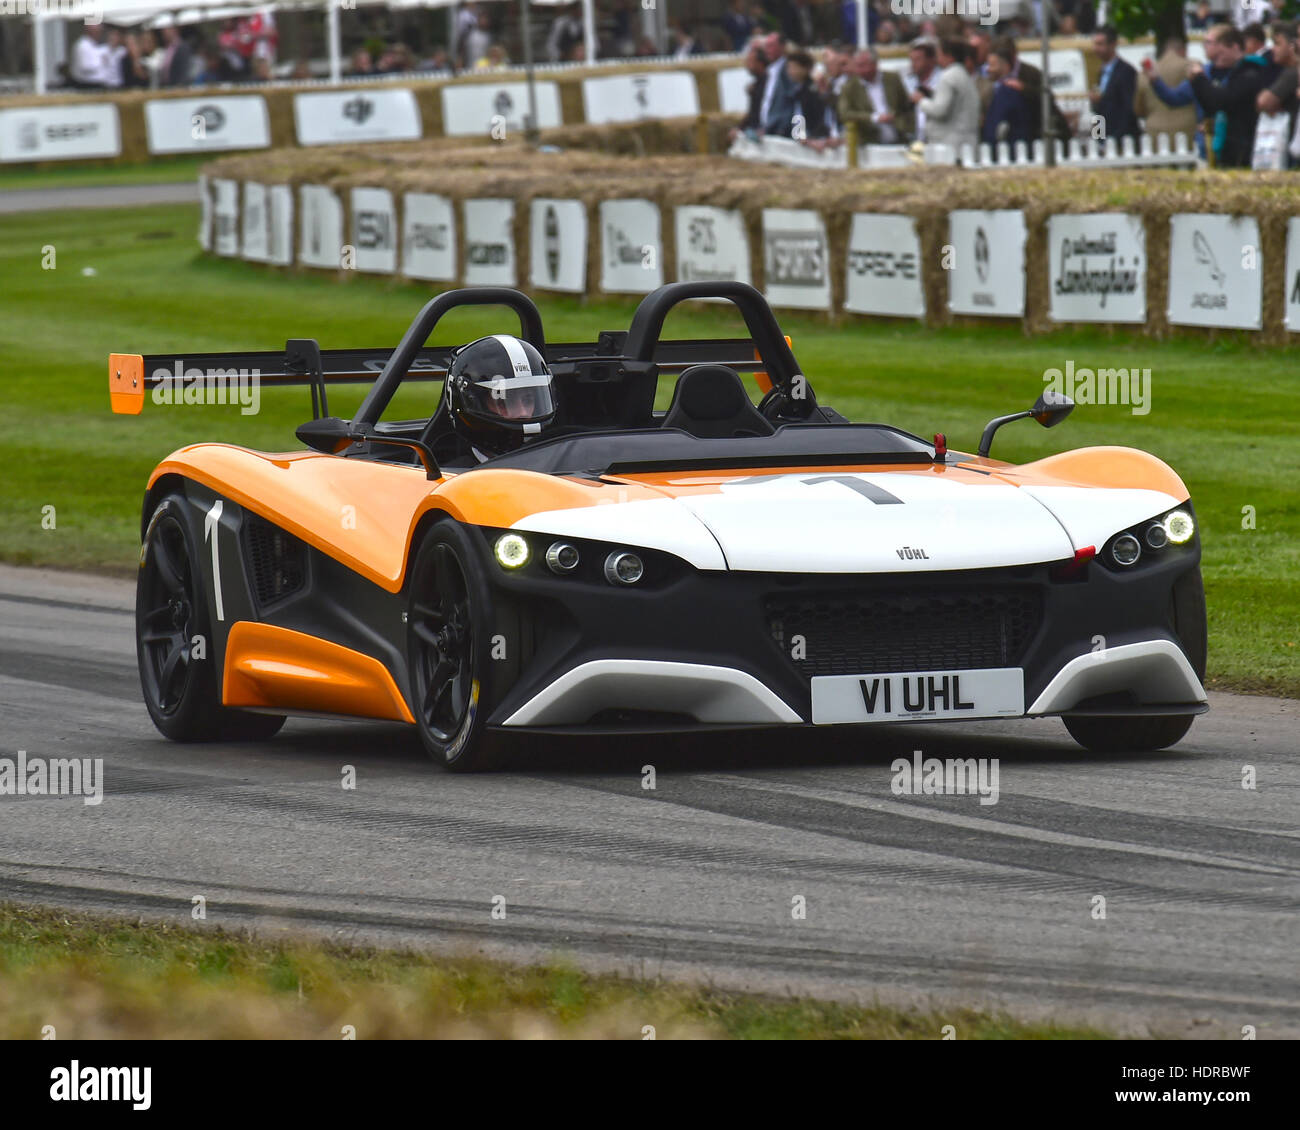 Vuhl 05RR, Goodwood Festival of Speed, 2016. automobiles, cars, entertainment, Festival of Speed, FoS, Full Throttle, - Stock Image